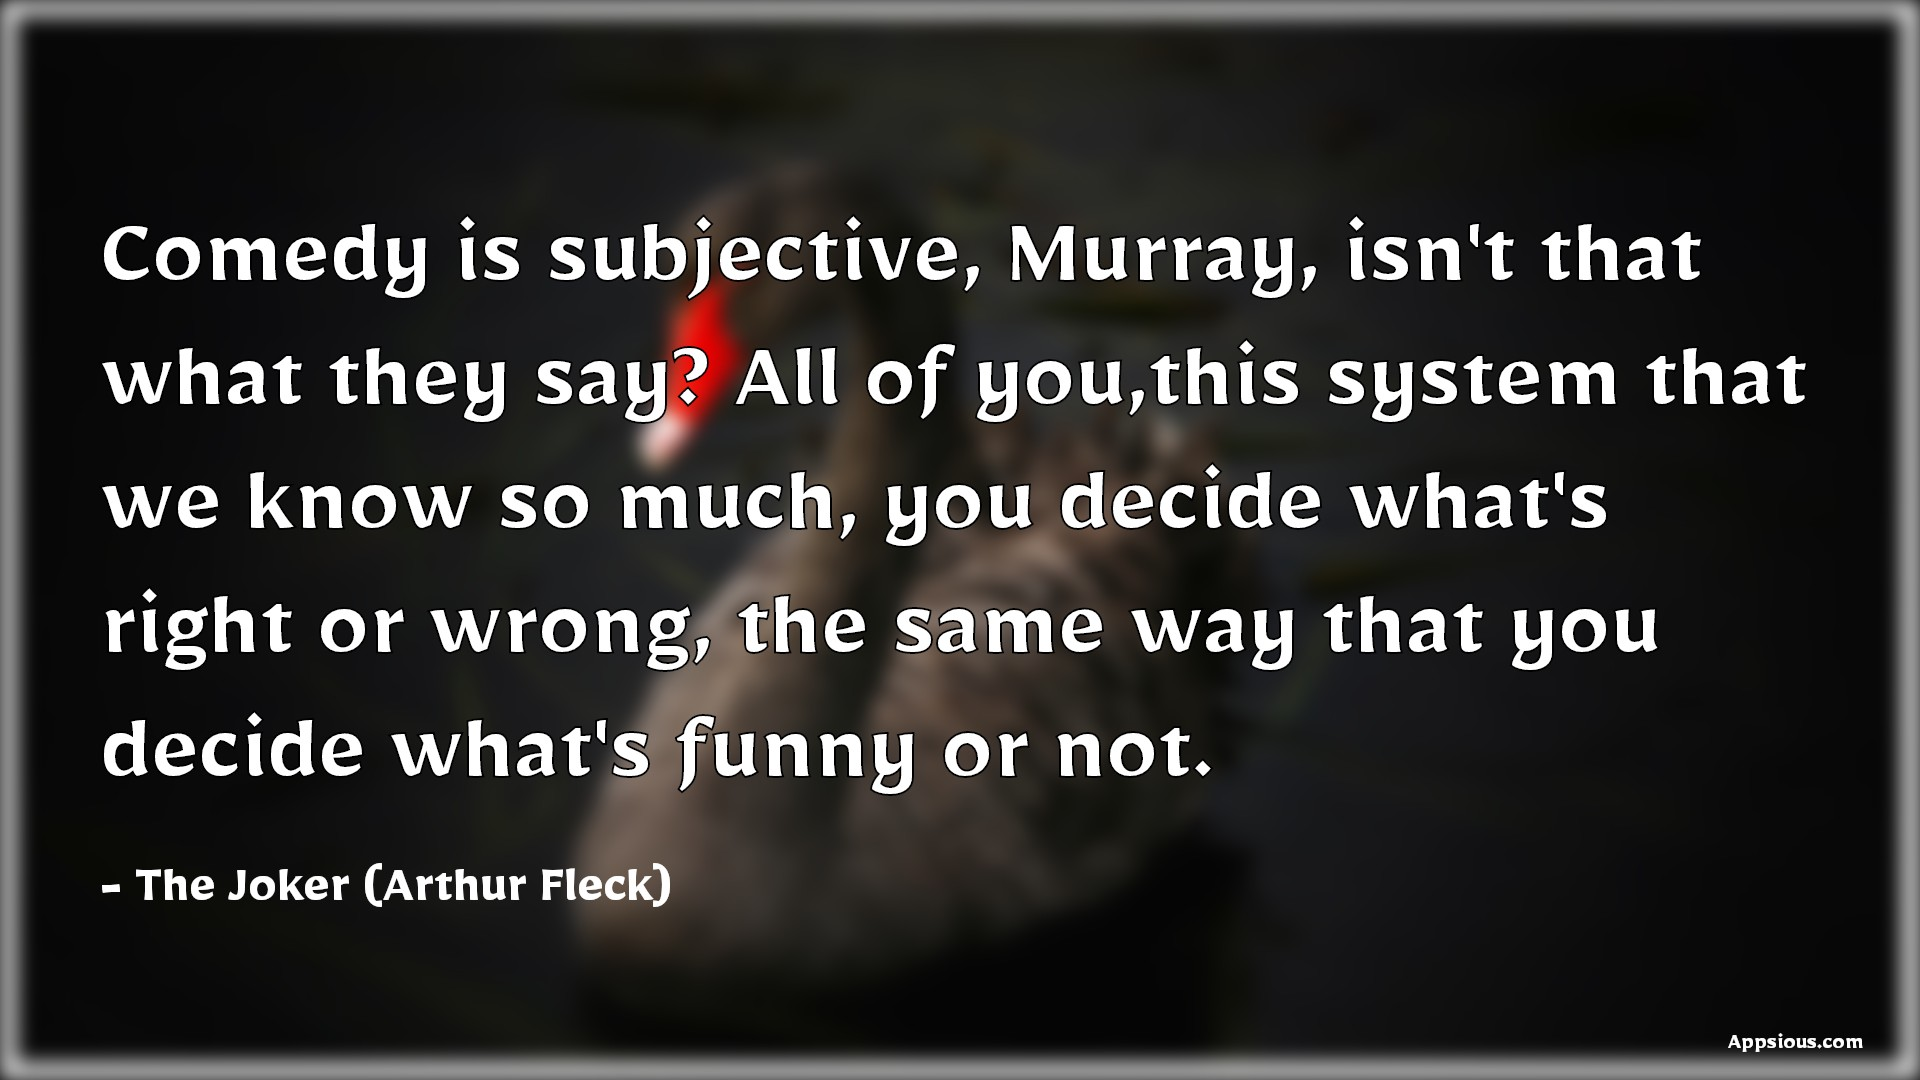 Comedy is subjective, Murray, isn't that what they say? All of you,this system that we know so much, you decide what's right or wrong, the same way that you decide what's funny or not.